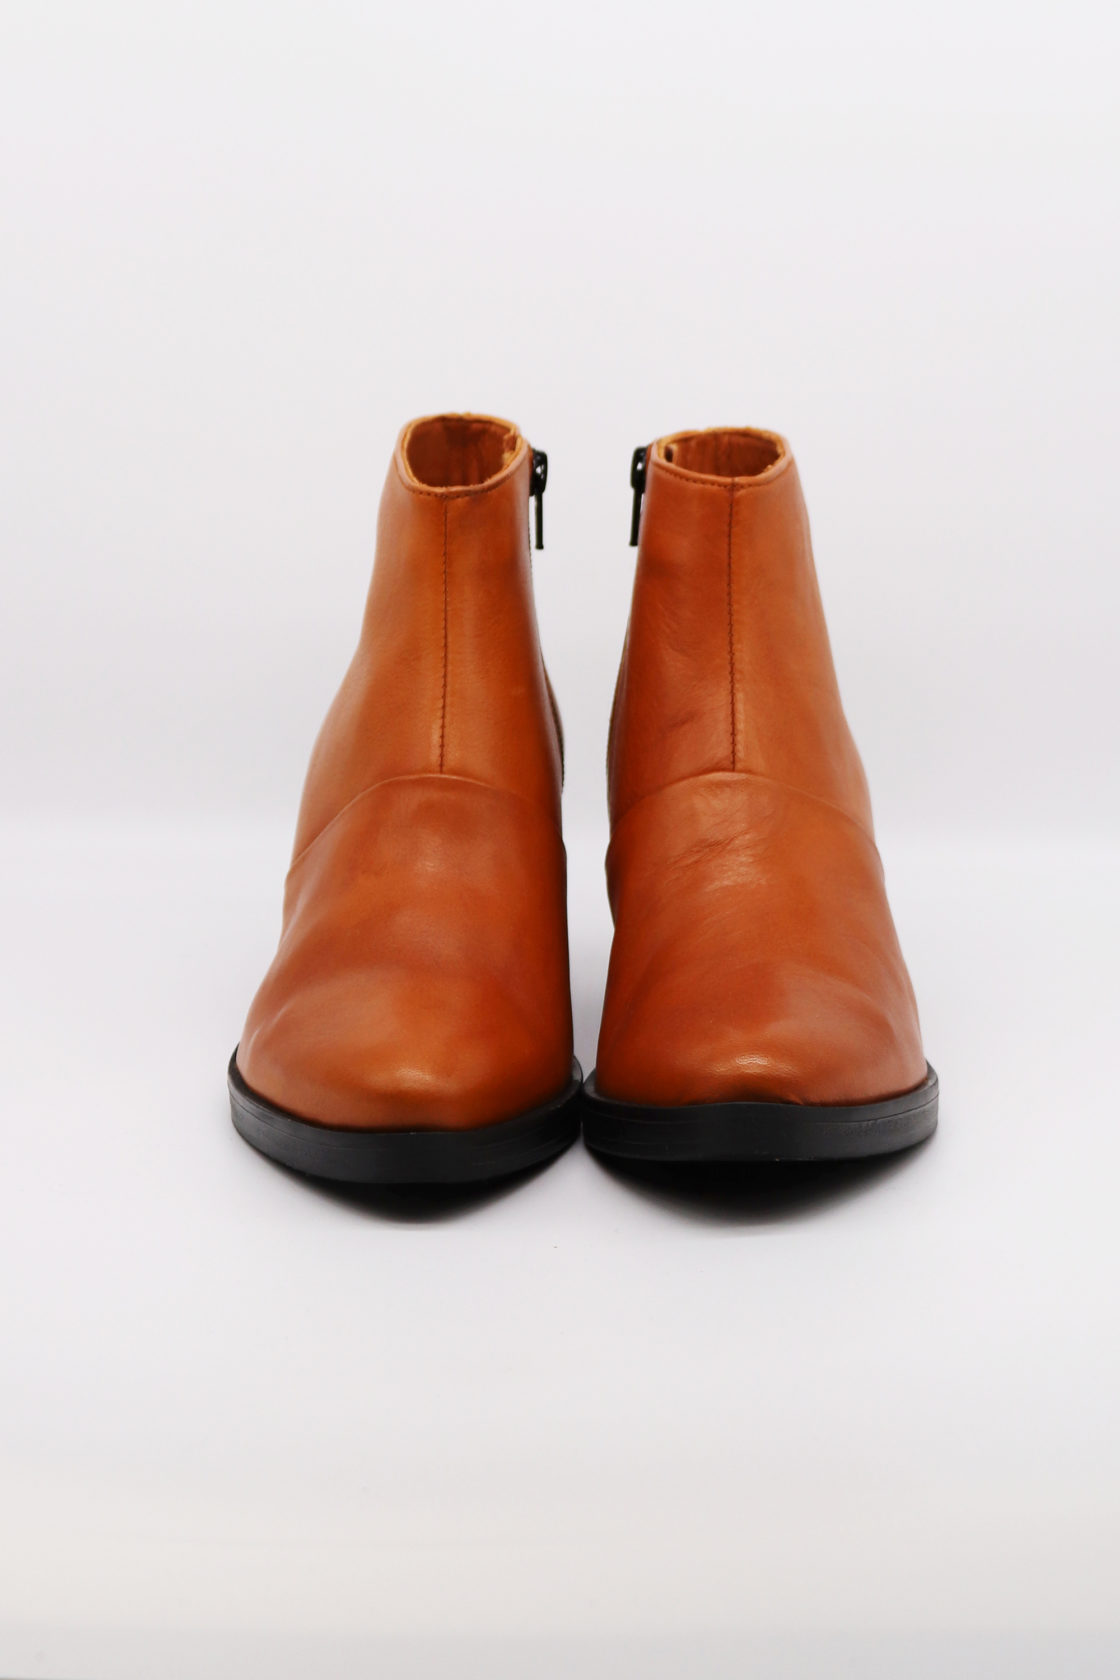 Roberta Organic Fashion Werner Ankle Boots Cognac 3